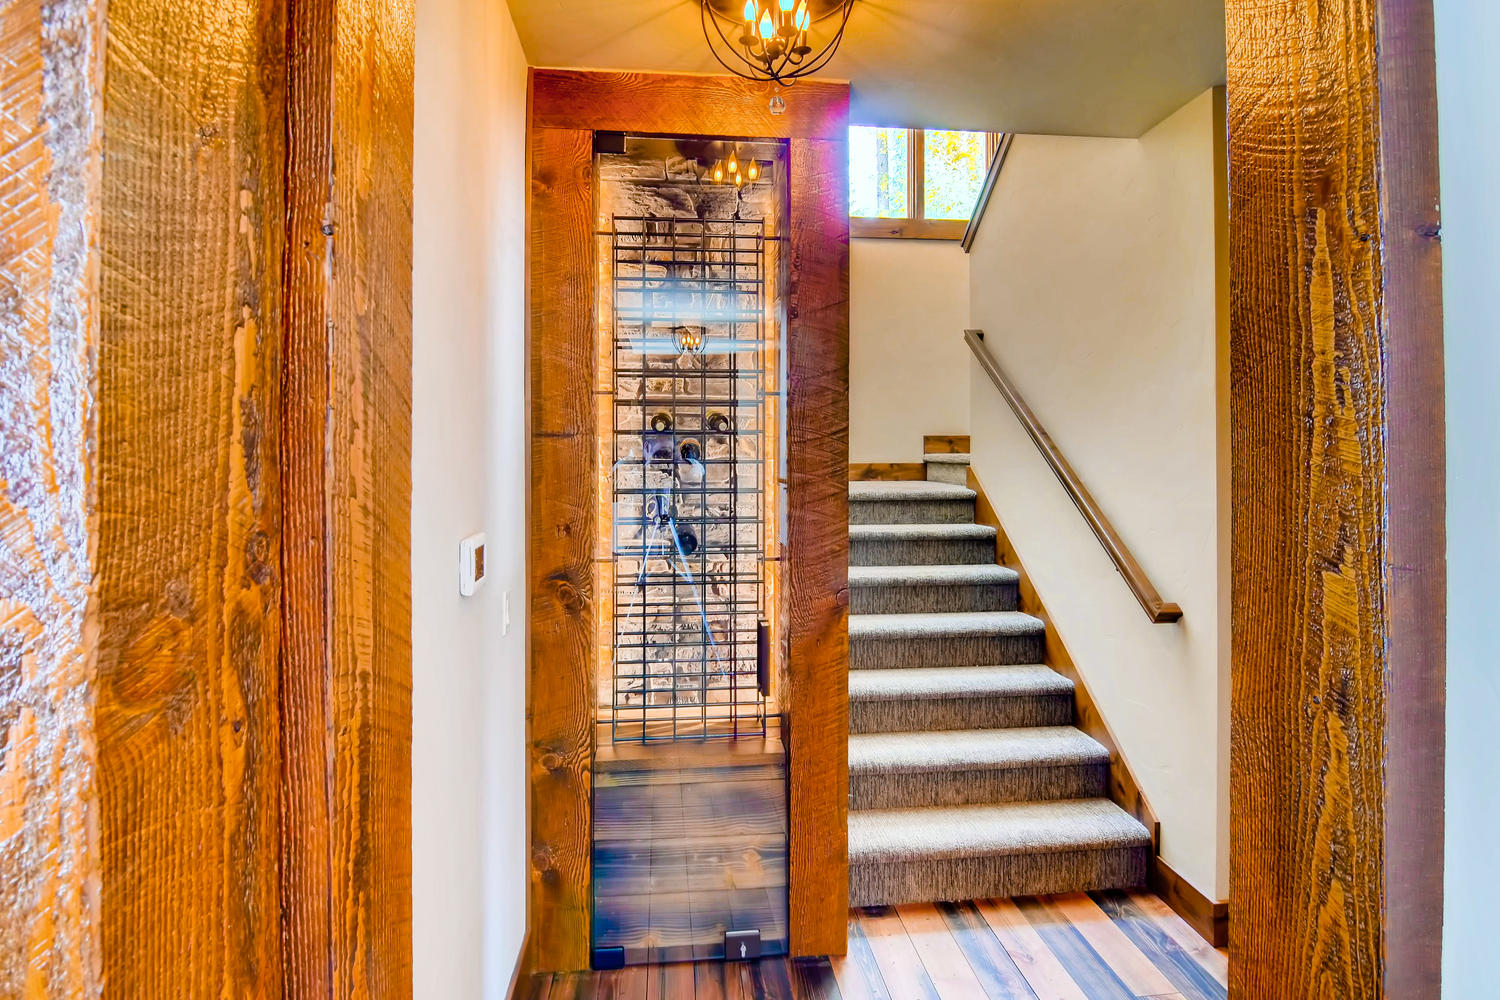 100 30 Cozy Fall Staircase D Christmas In The Kitchen Warm And Cozy Christmas Home Tour The